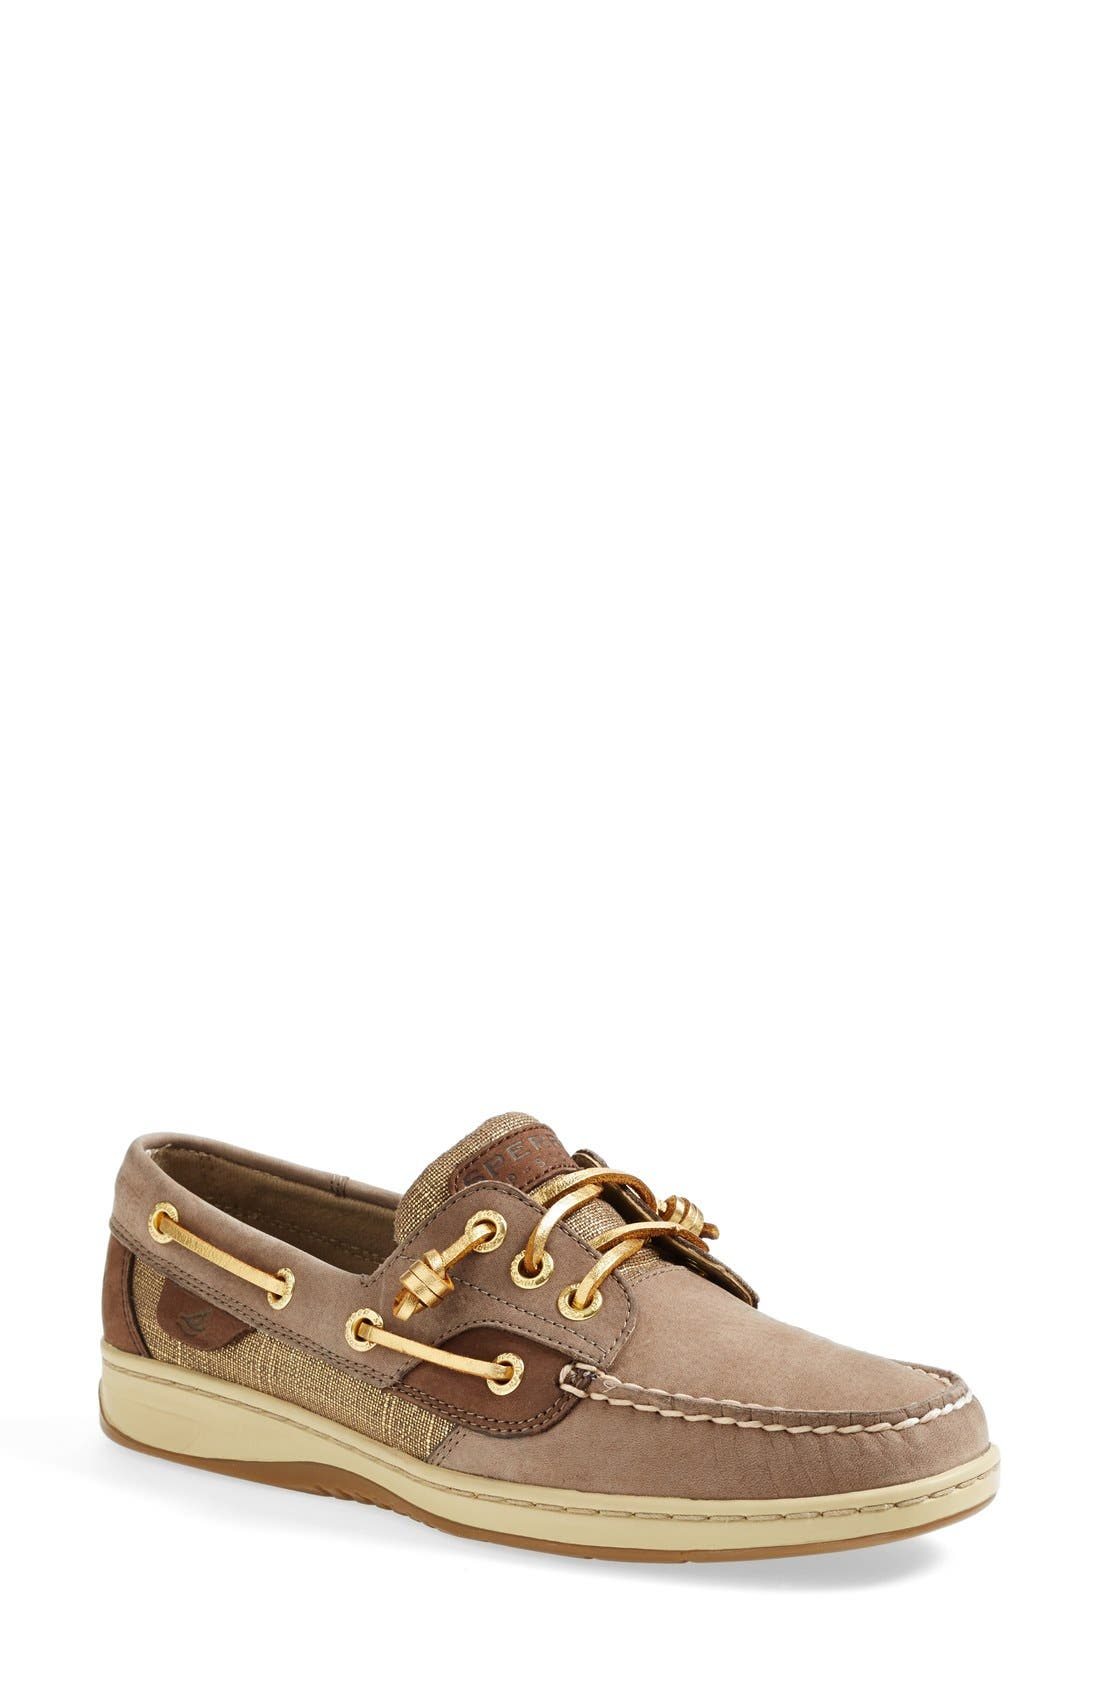 Alternate Image 1 Selected - Sperry Top-Sider® 'Ivyfish' Boat Shoe (Women)